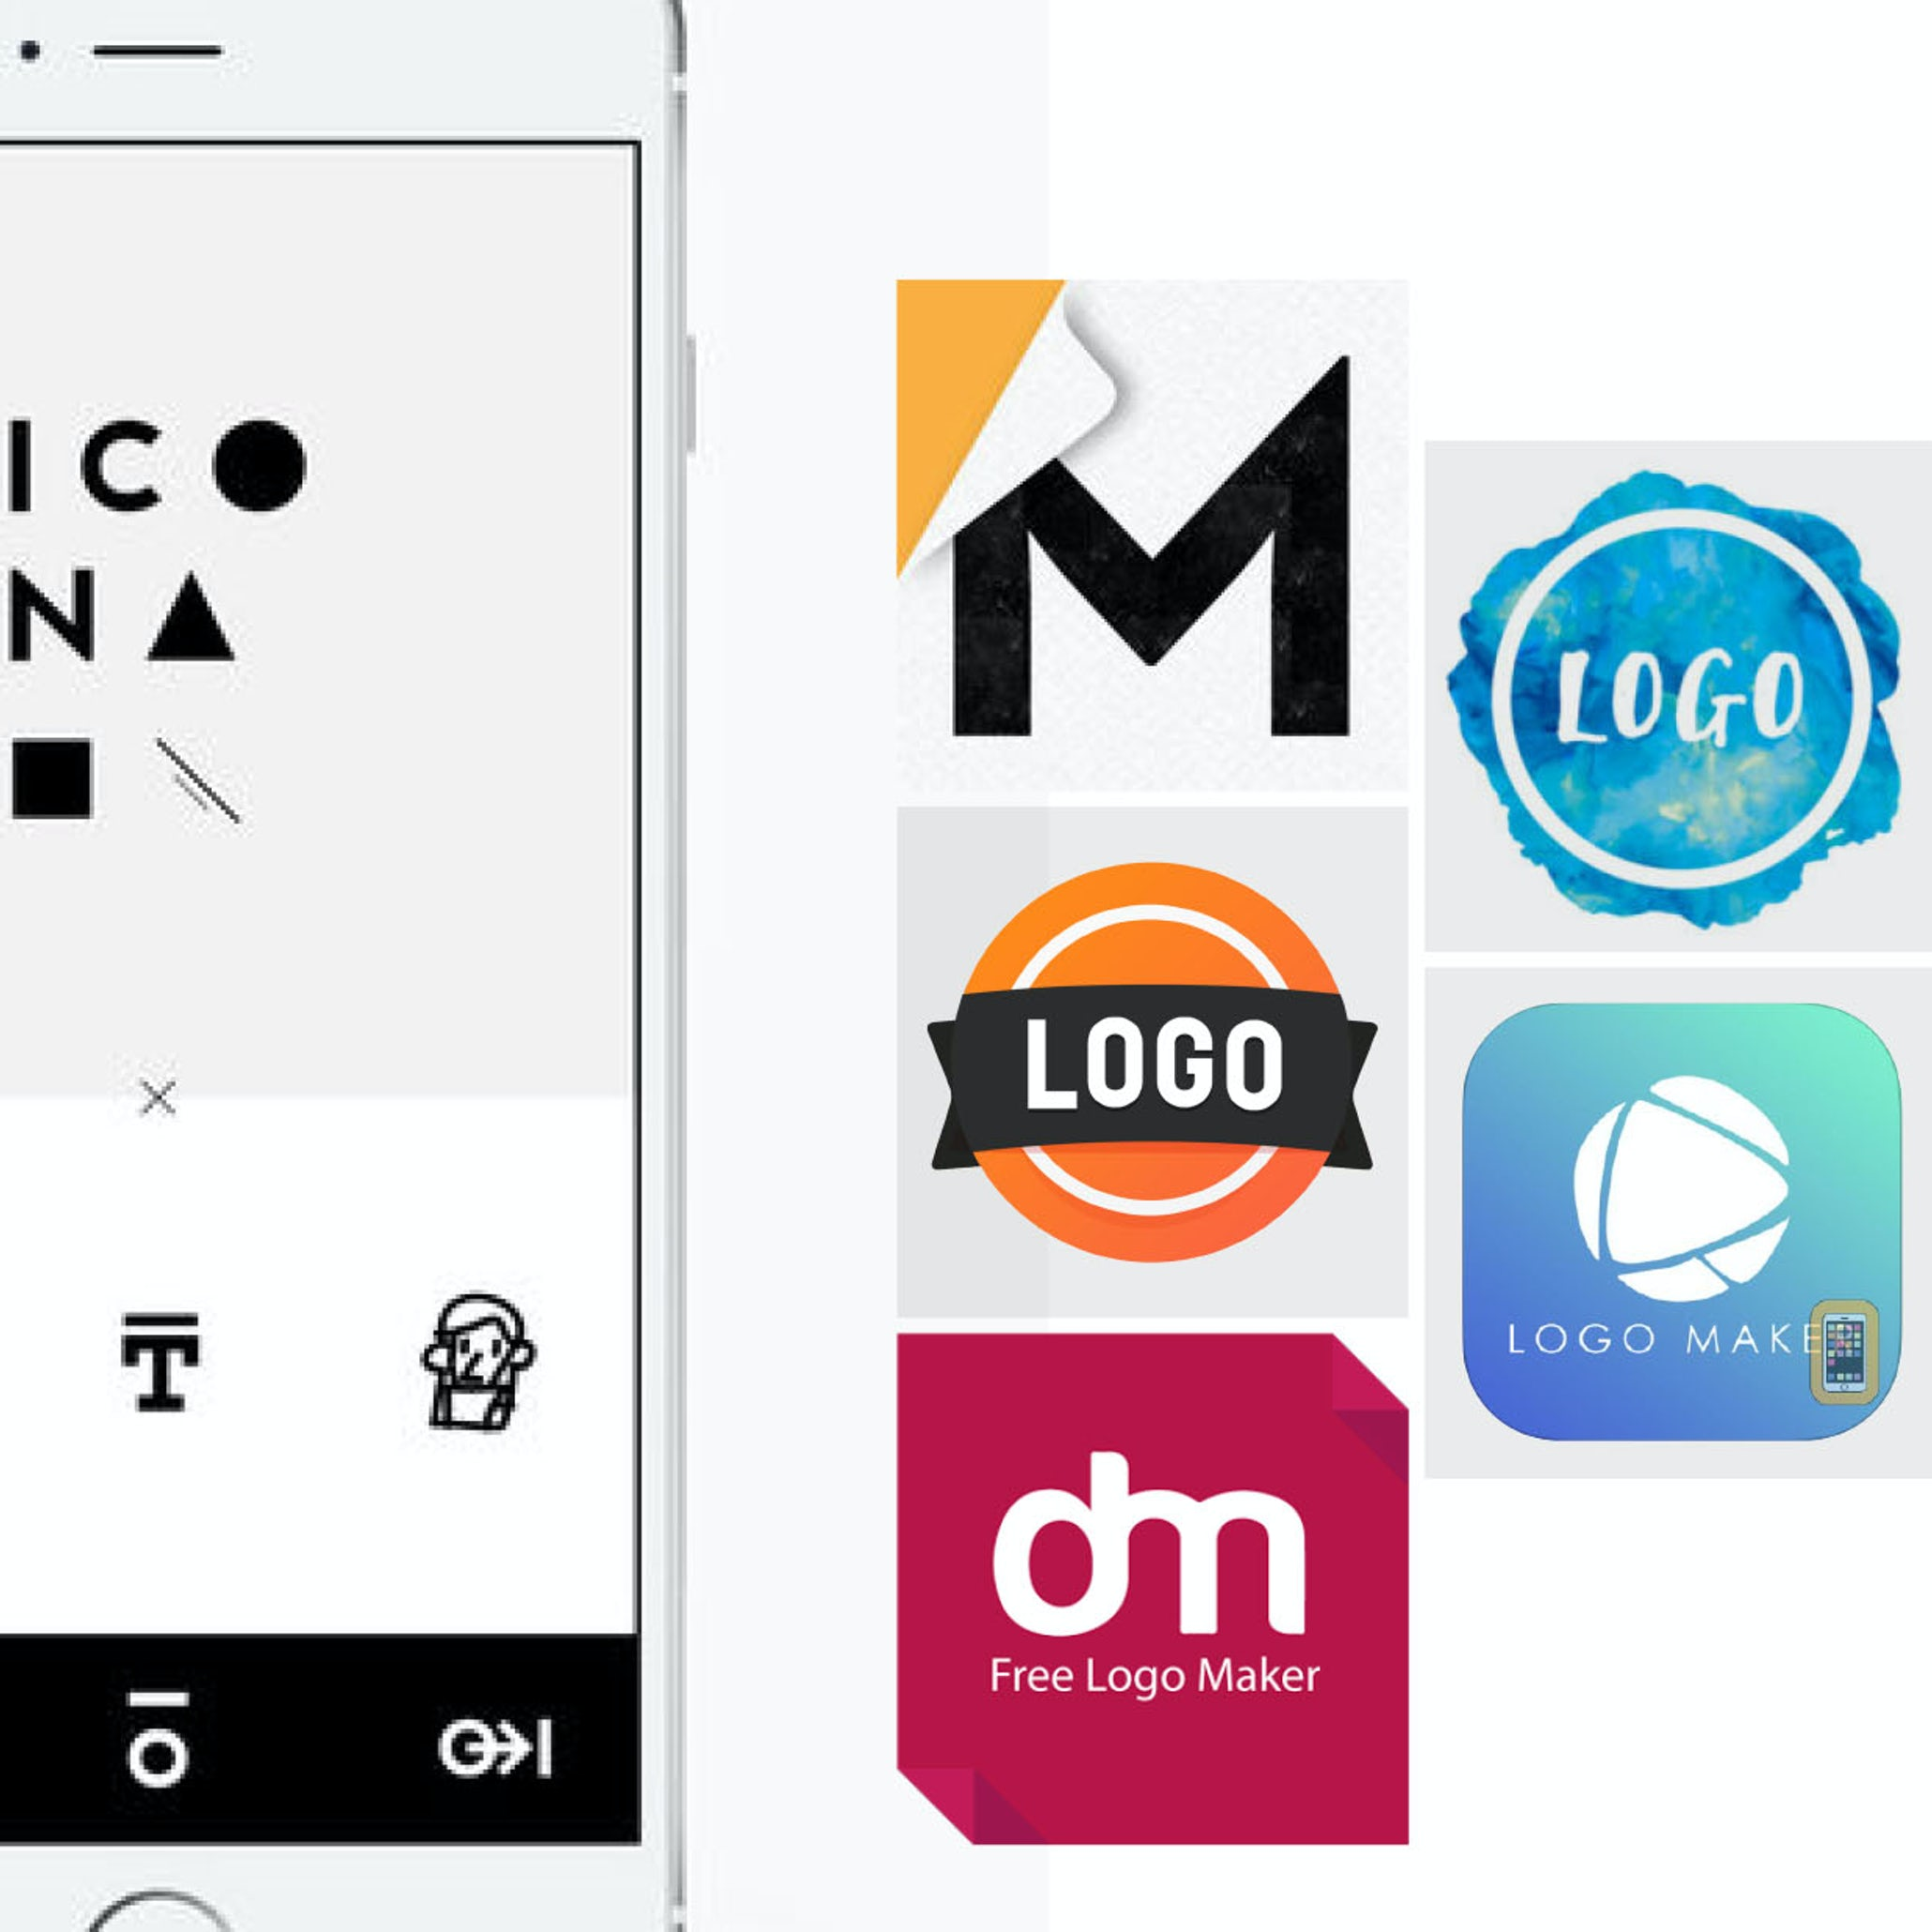 8 Best Logo Design Apps To Help You Build A Brand With Your Phone